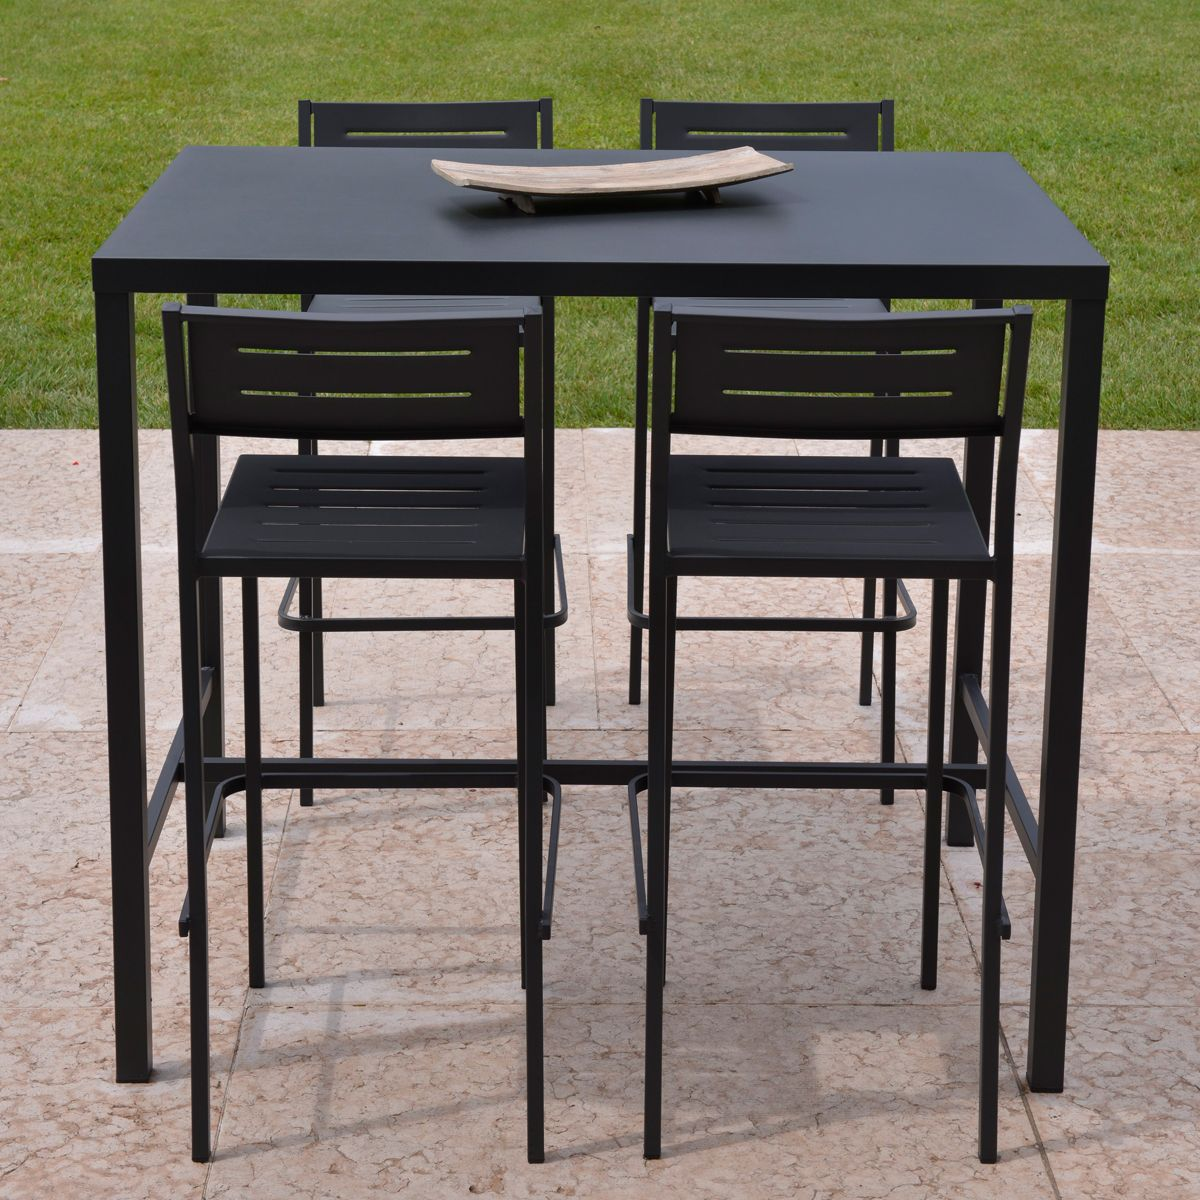 Ensemble de jardin table haute tabouret dorio rd italia for Tabouret table haute